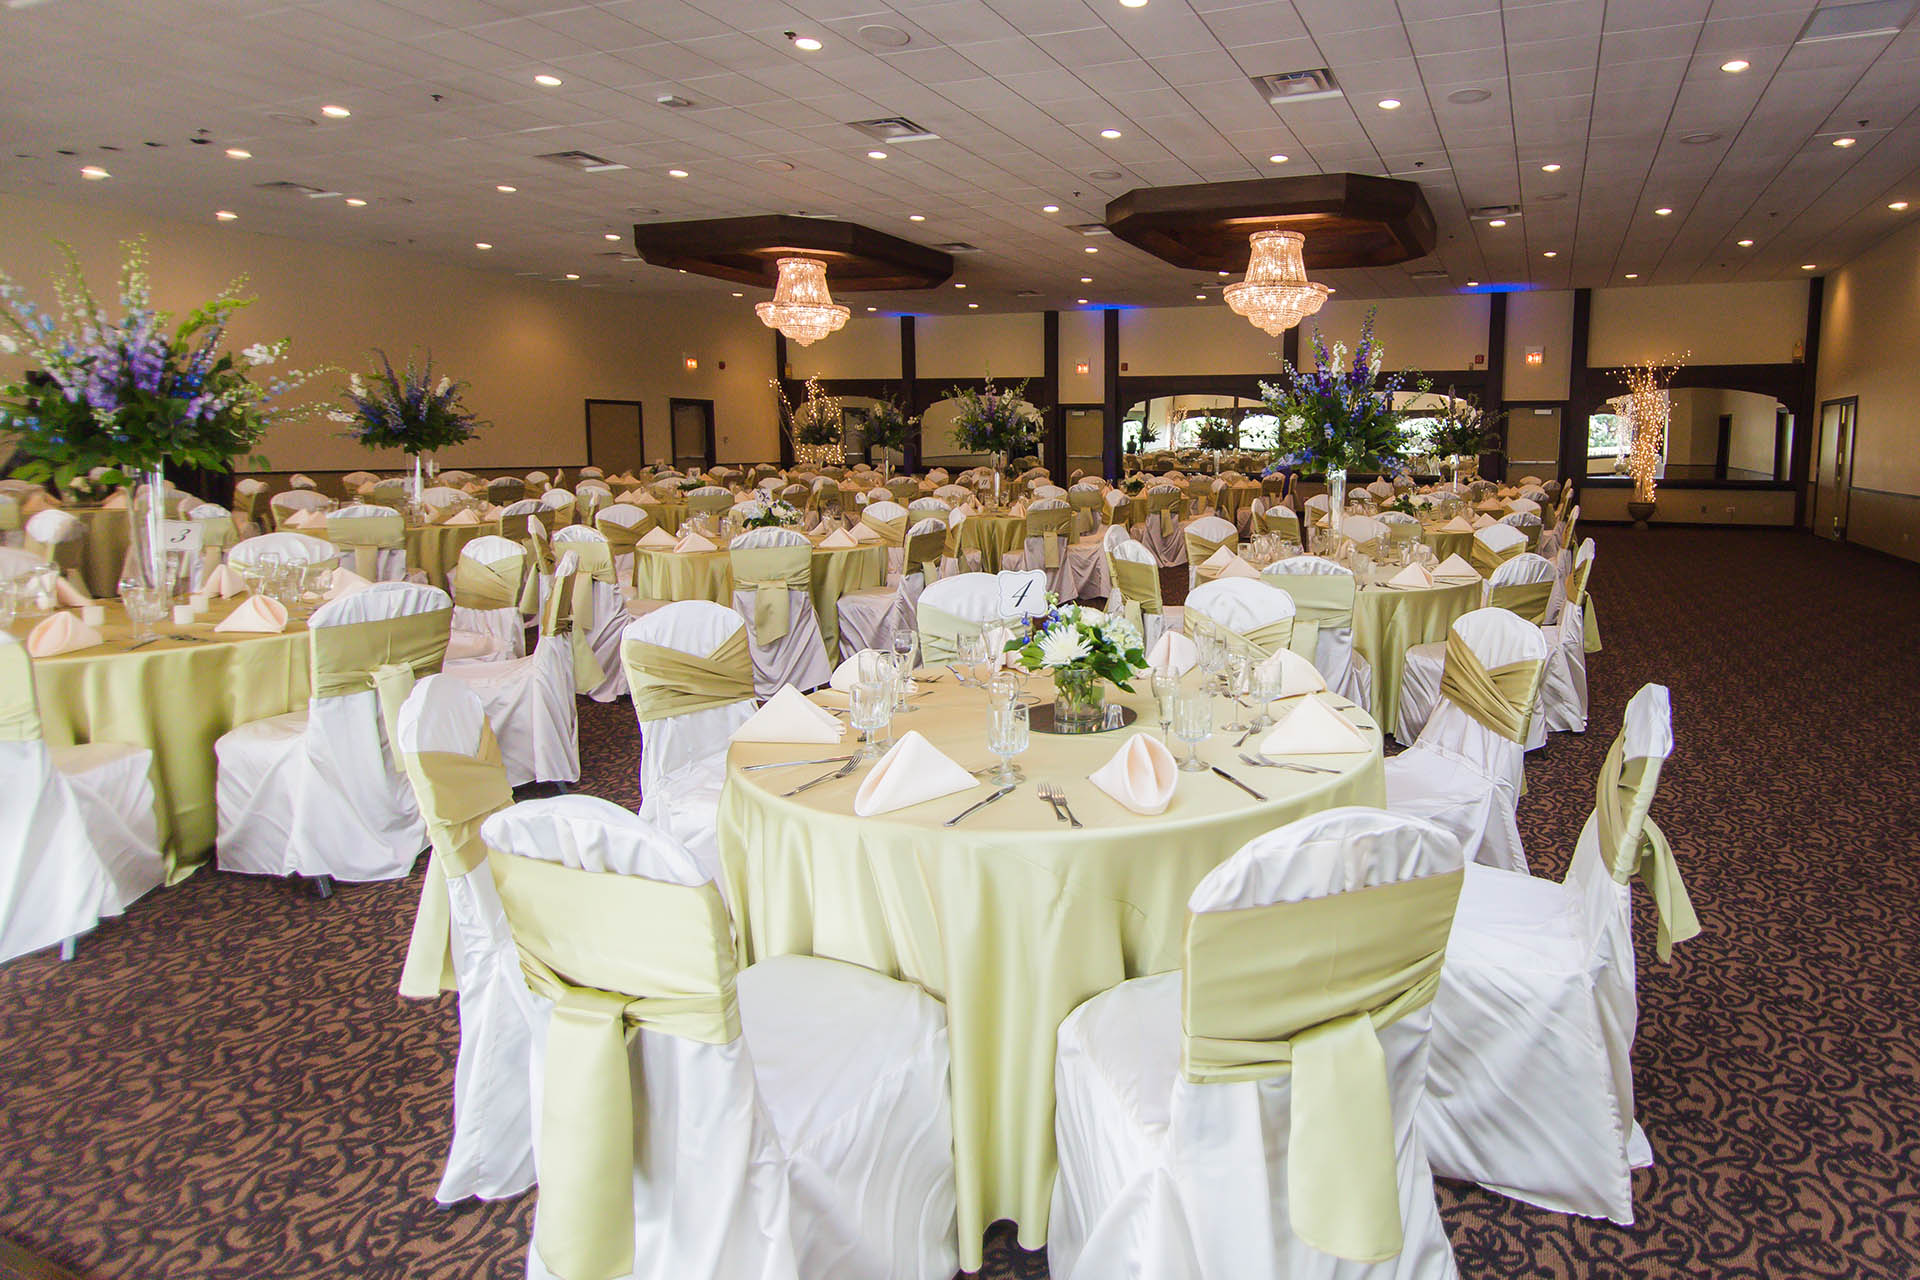 North shore wedgewood weddings the chandler room is perfect for larger receptions at wedgewood weddings north shore lake county il solutioingenieria Image collections